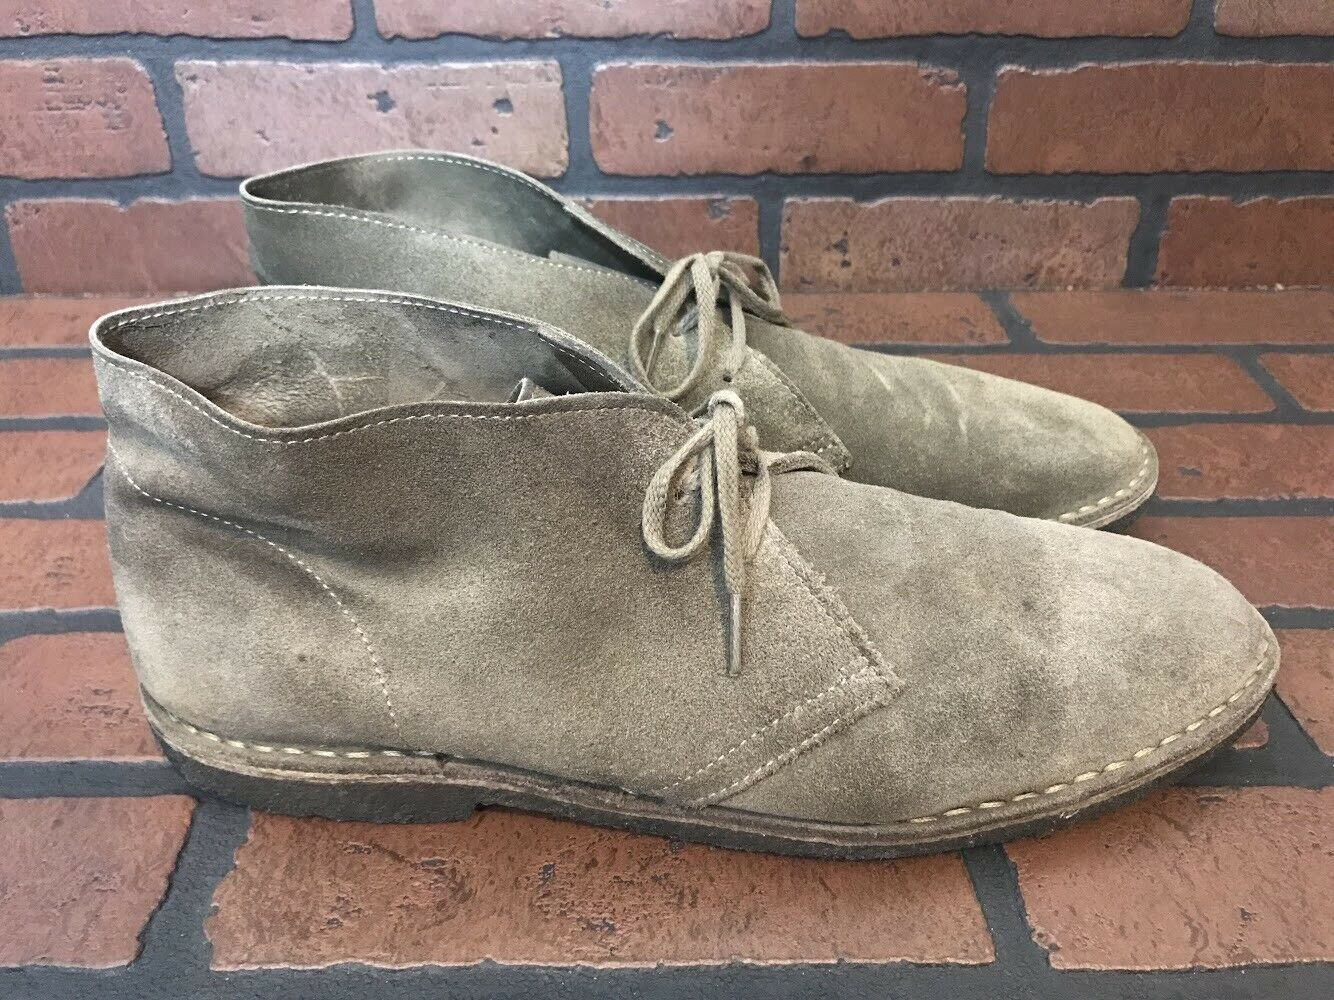 J. Crew Chukka Boots Beige Suede Leather Size 13 Made In Italy